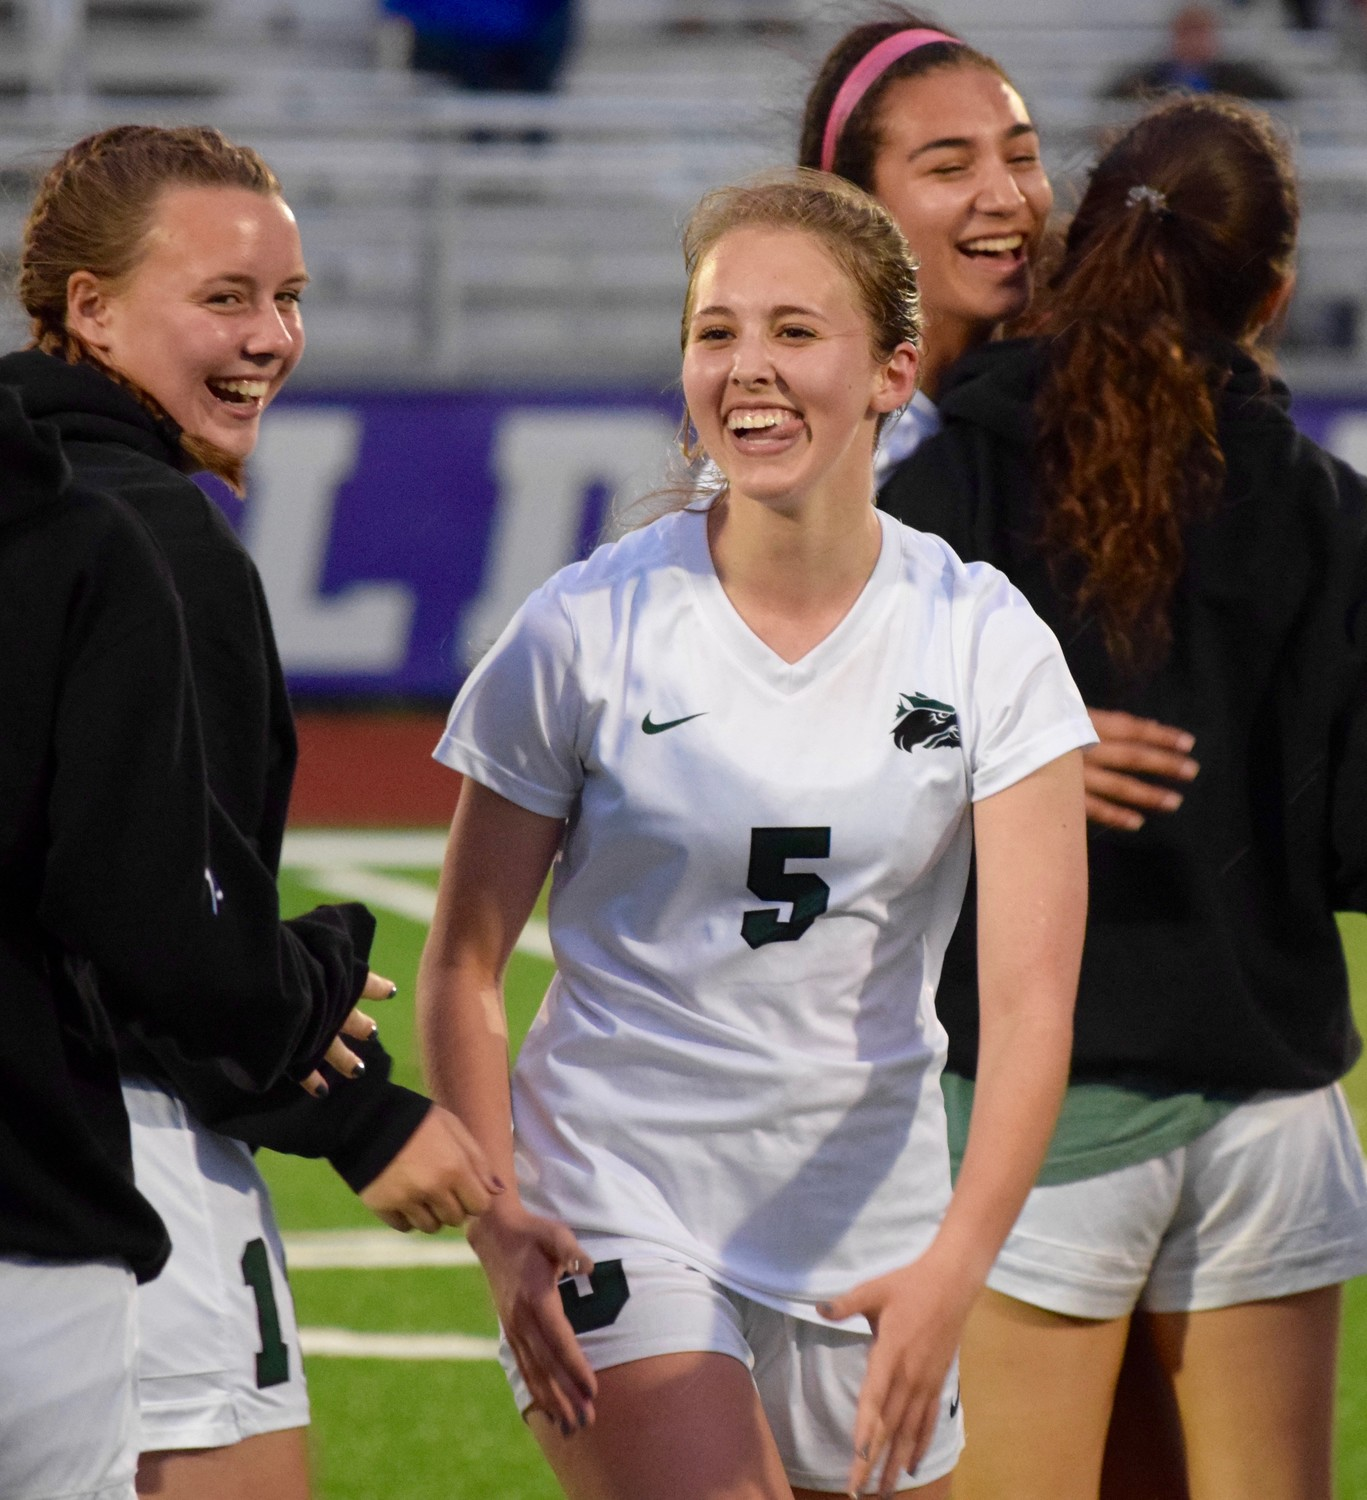 Autumn Forbes celebrates after Cedar Park beat College Station 2-1 in the third round of the playoffs Tuesday night.